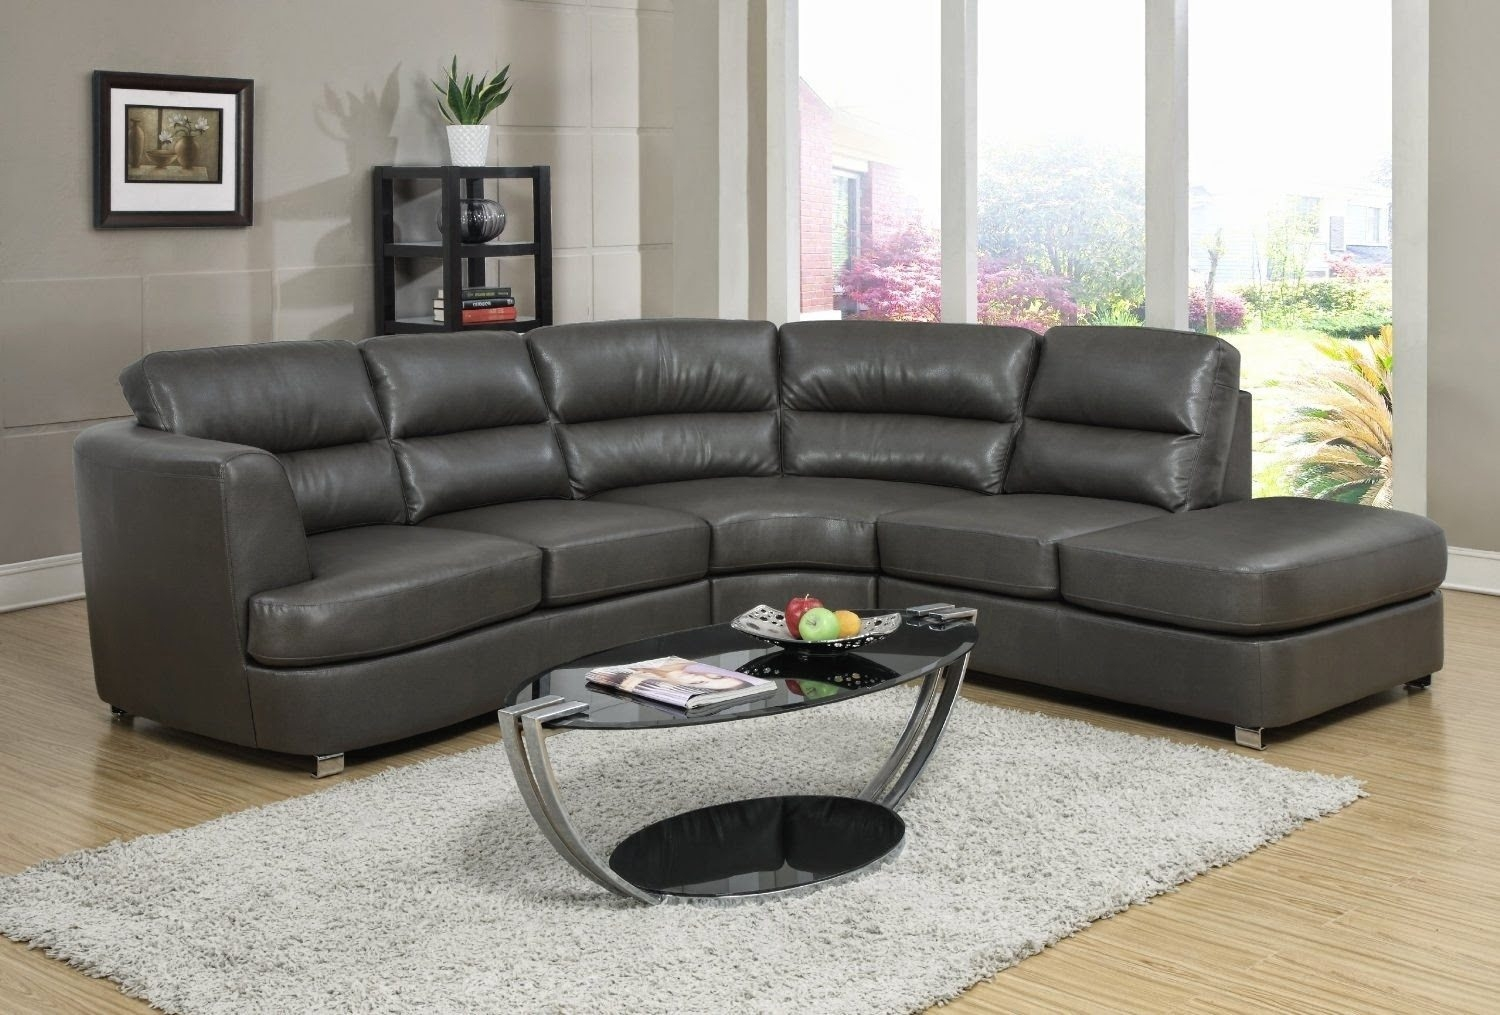 Sofas Center Charcoal Leather Sofa Grey Sectional Sofacharcoal Throughout Charcoal Grey Sofas (Image 11 of 15)